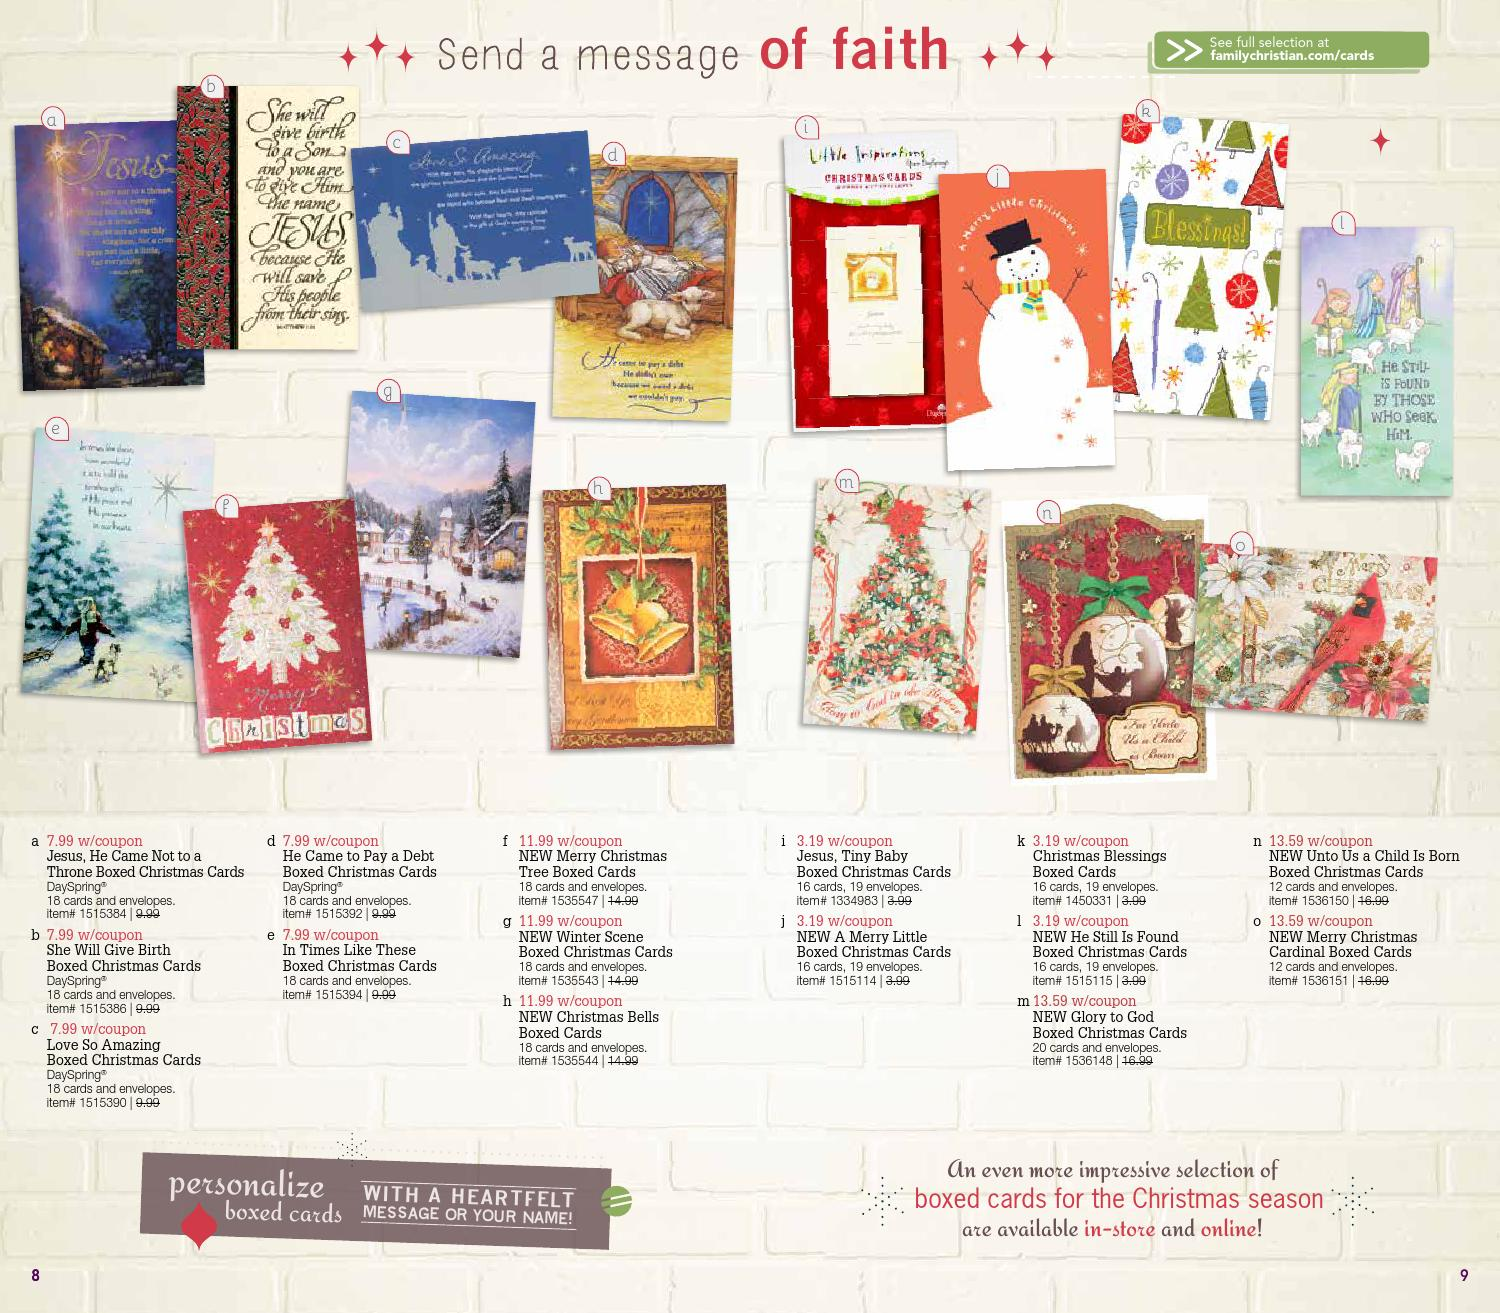 Family Christian Christmas 1 Catalog by Family Christian Stores - issuu